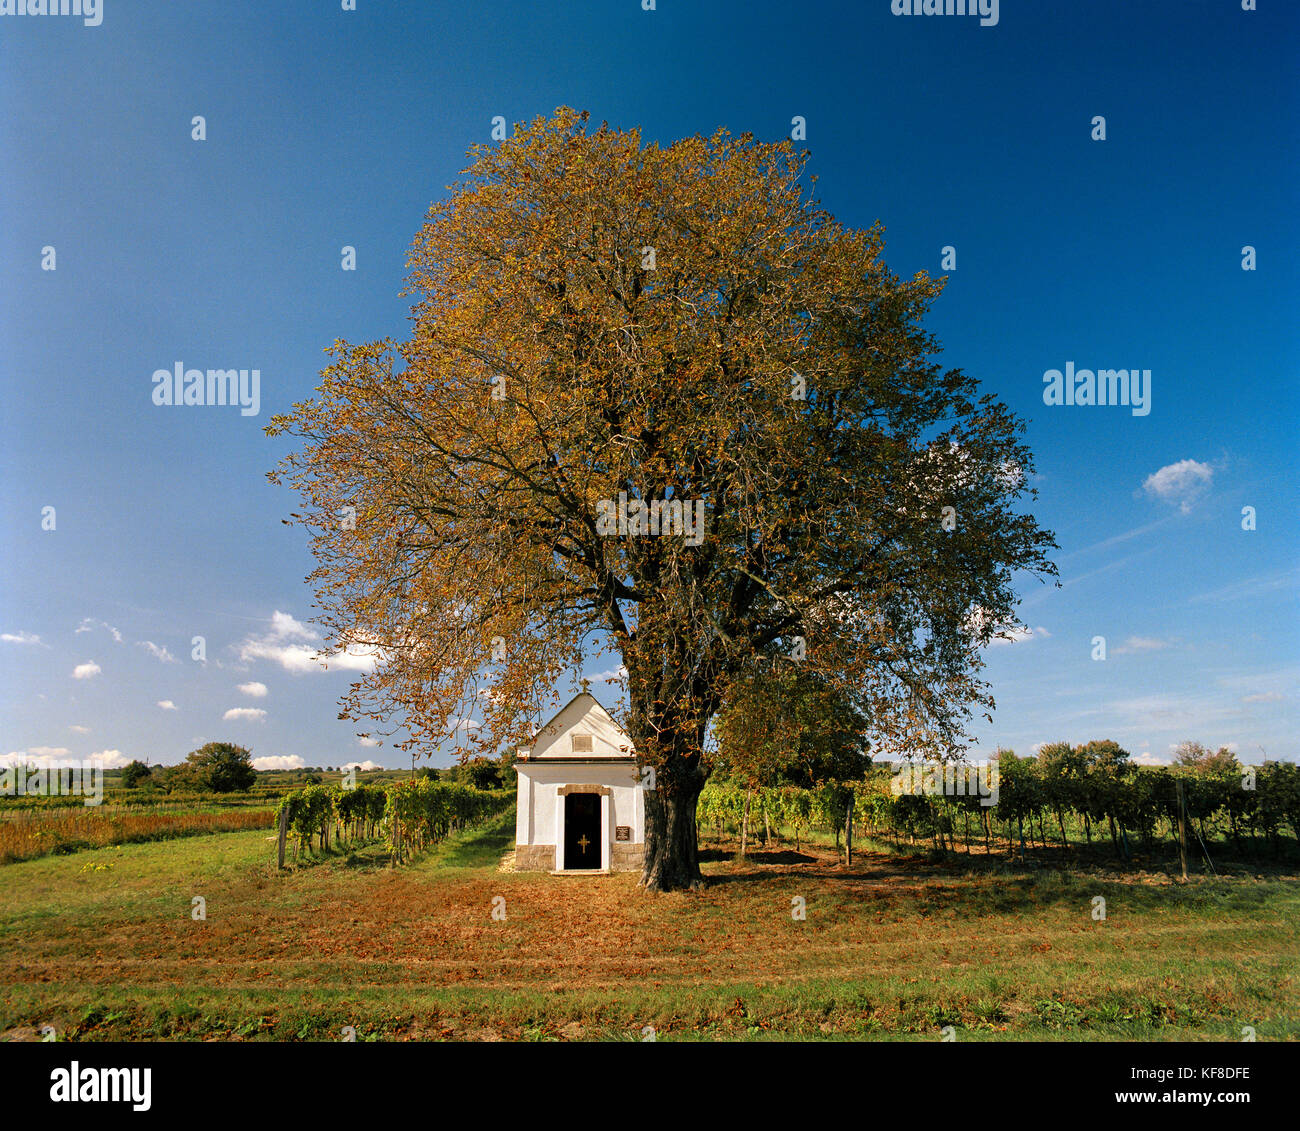 AUSTRIA, Oggau, small Turkish Crypt rests under a tree on the edge of a vineyard, Burgenland - Stock Image